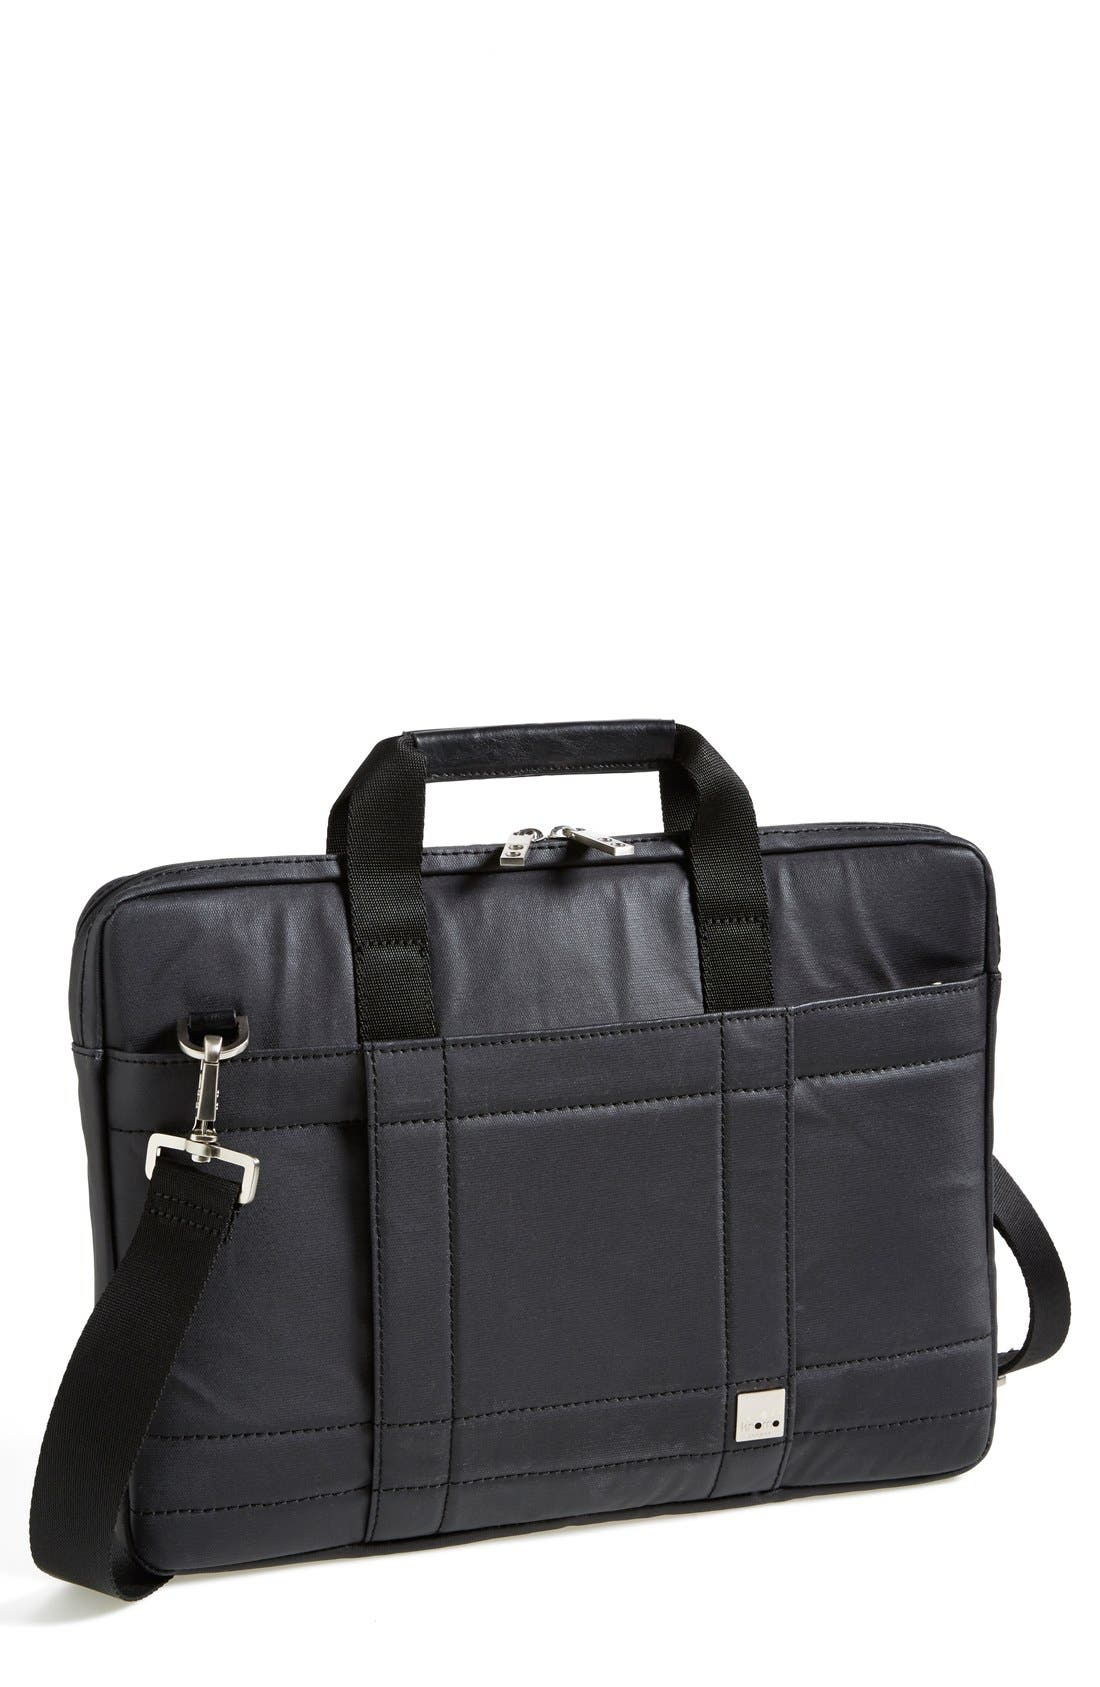 Main Image - KNOMO London 'Lincoln' Waterproof Briefcase